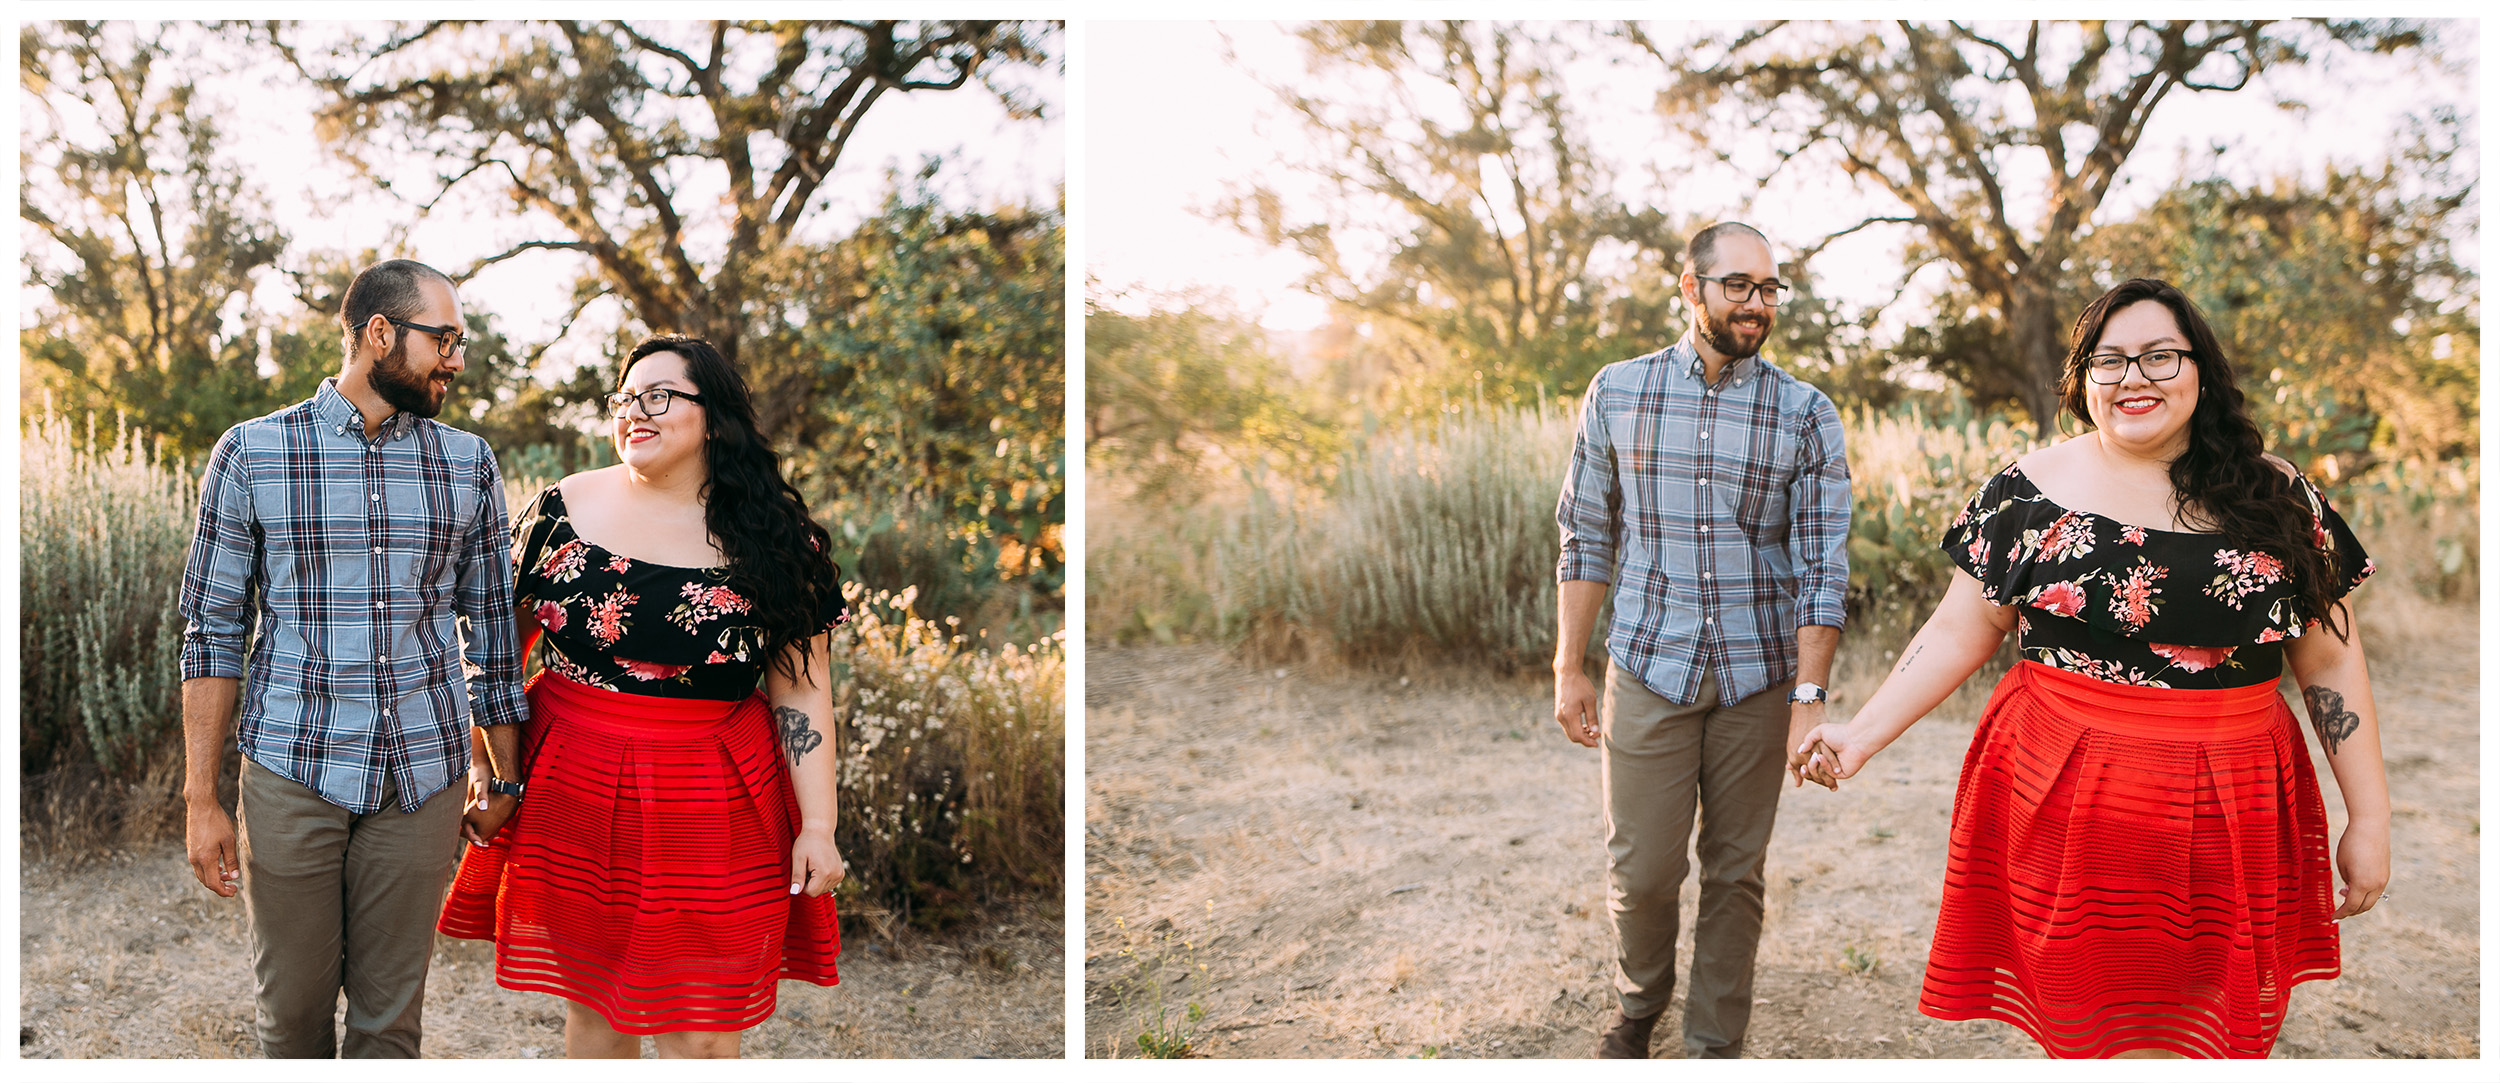 CK-Orange-County-Caspers-Park-Engagement-Photography-7.jpg